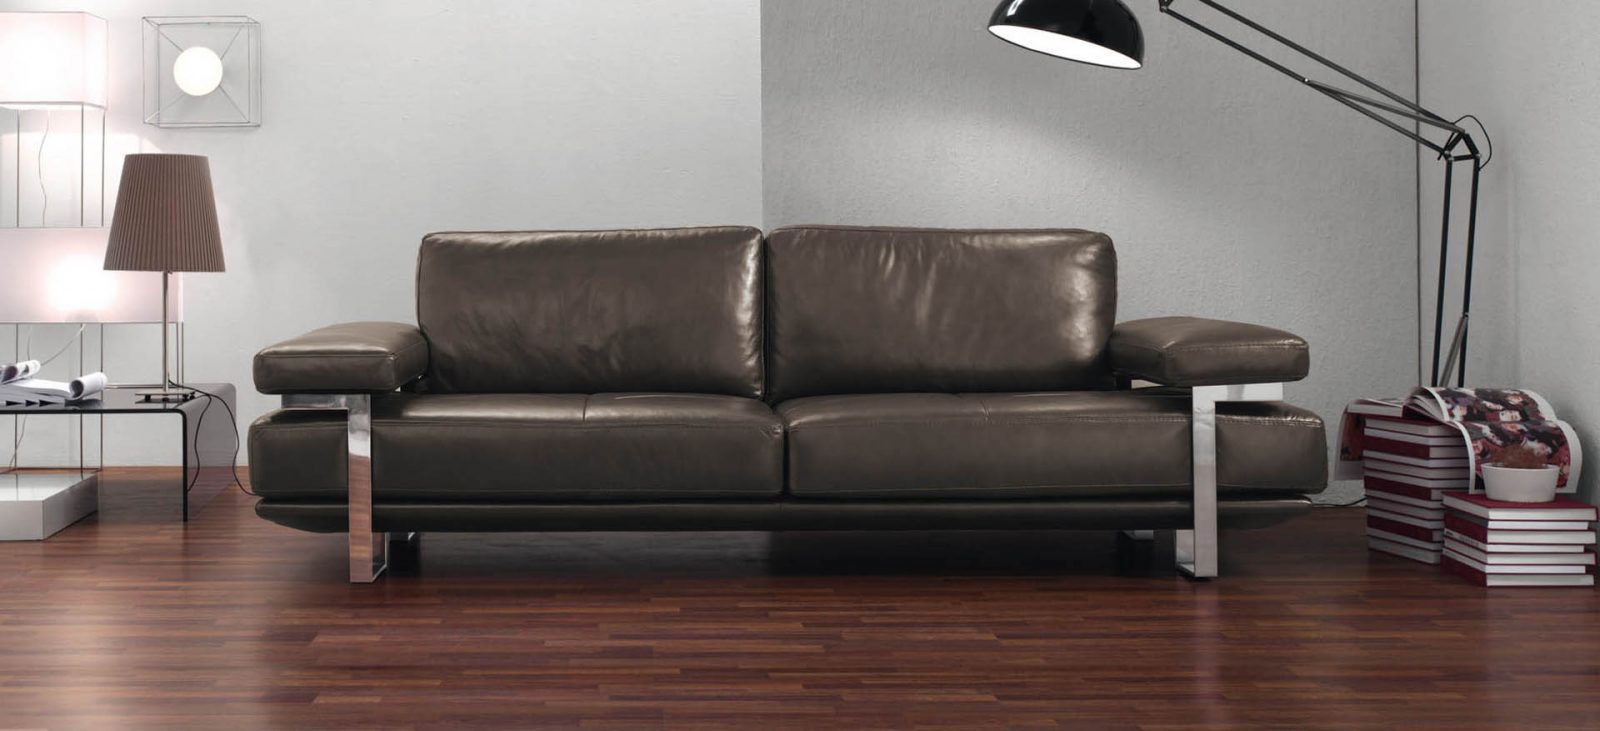 Sof s para la decoraci n de interiores en for Sofas italianos de piel